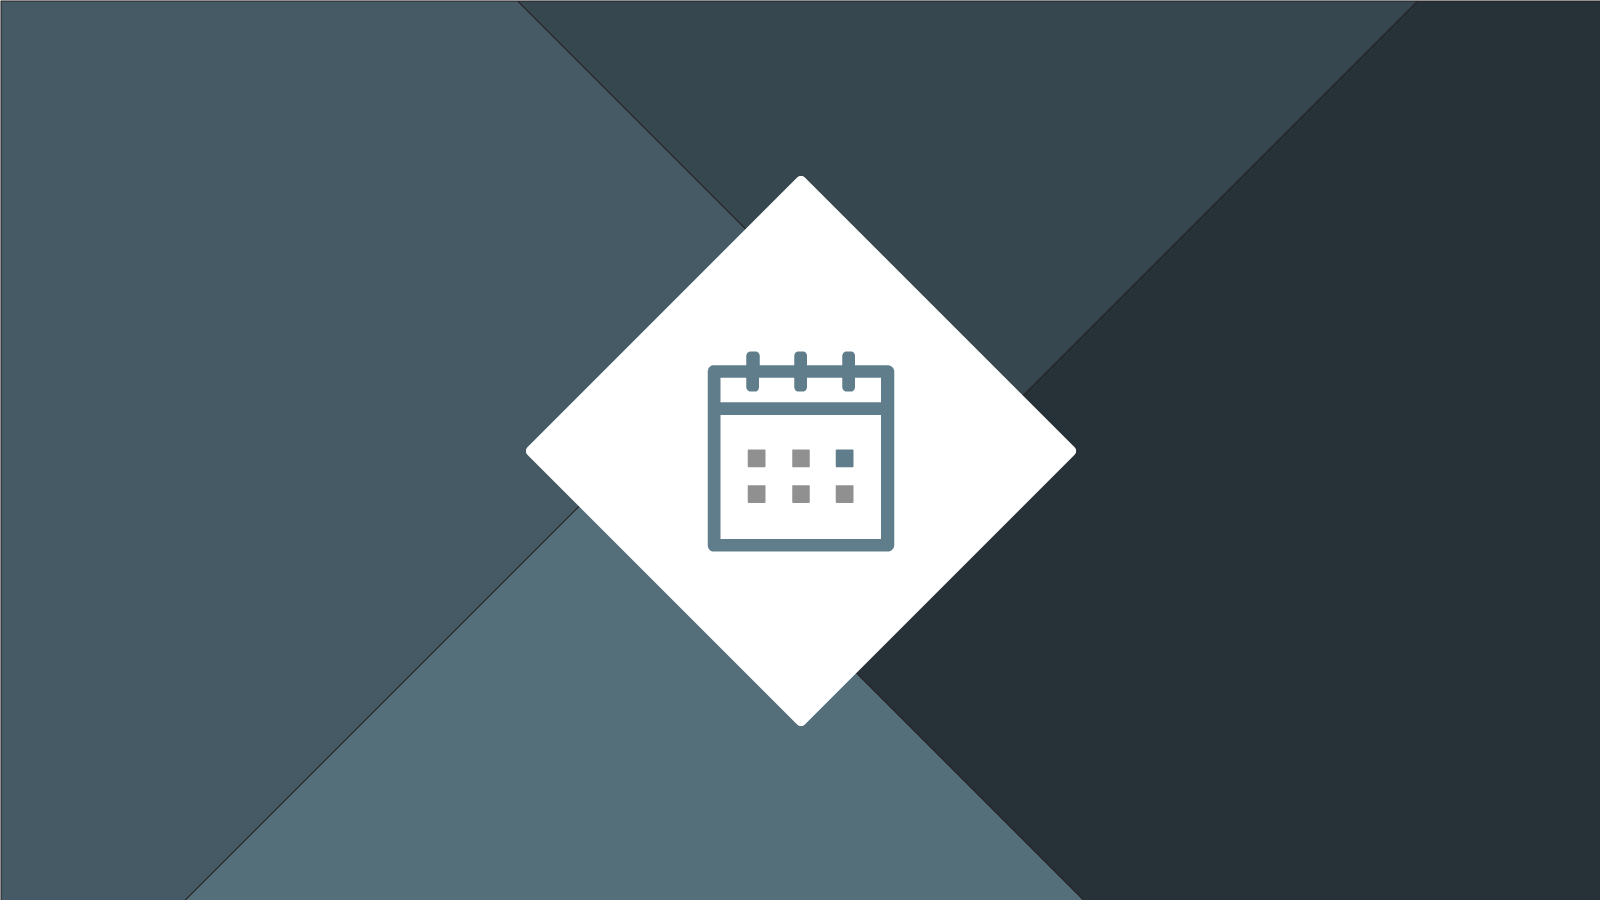 Learn more about the Scheduling Adobe Muse widget